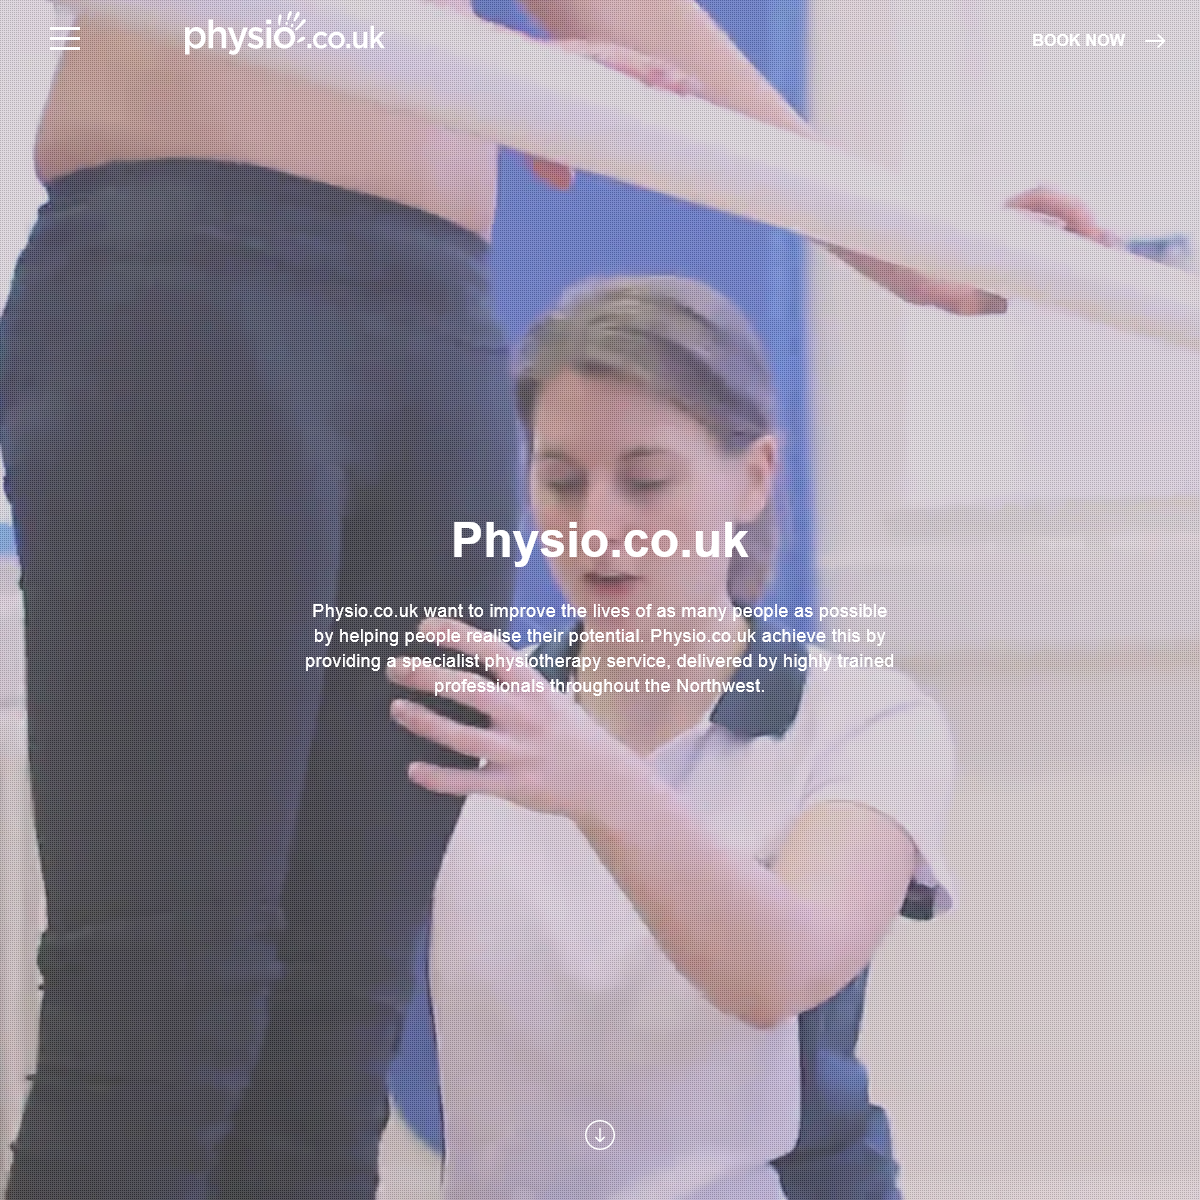 Physio.co.uk - Leading Physiotherapy provider in Manchester and Liverpool..